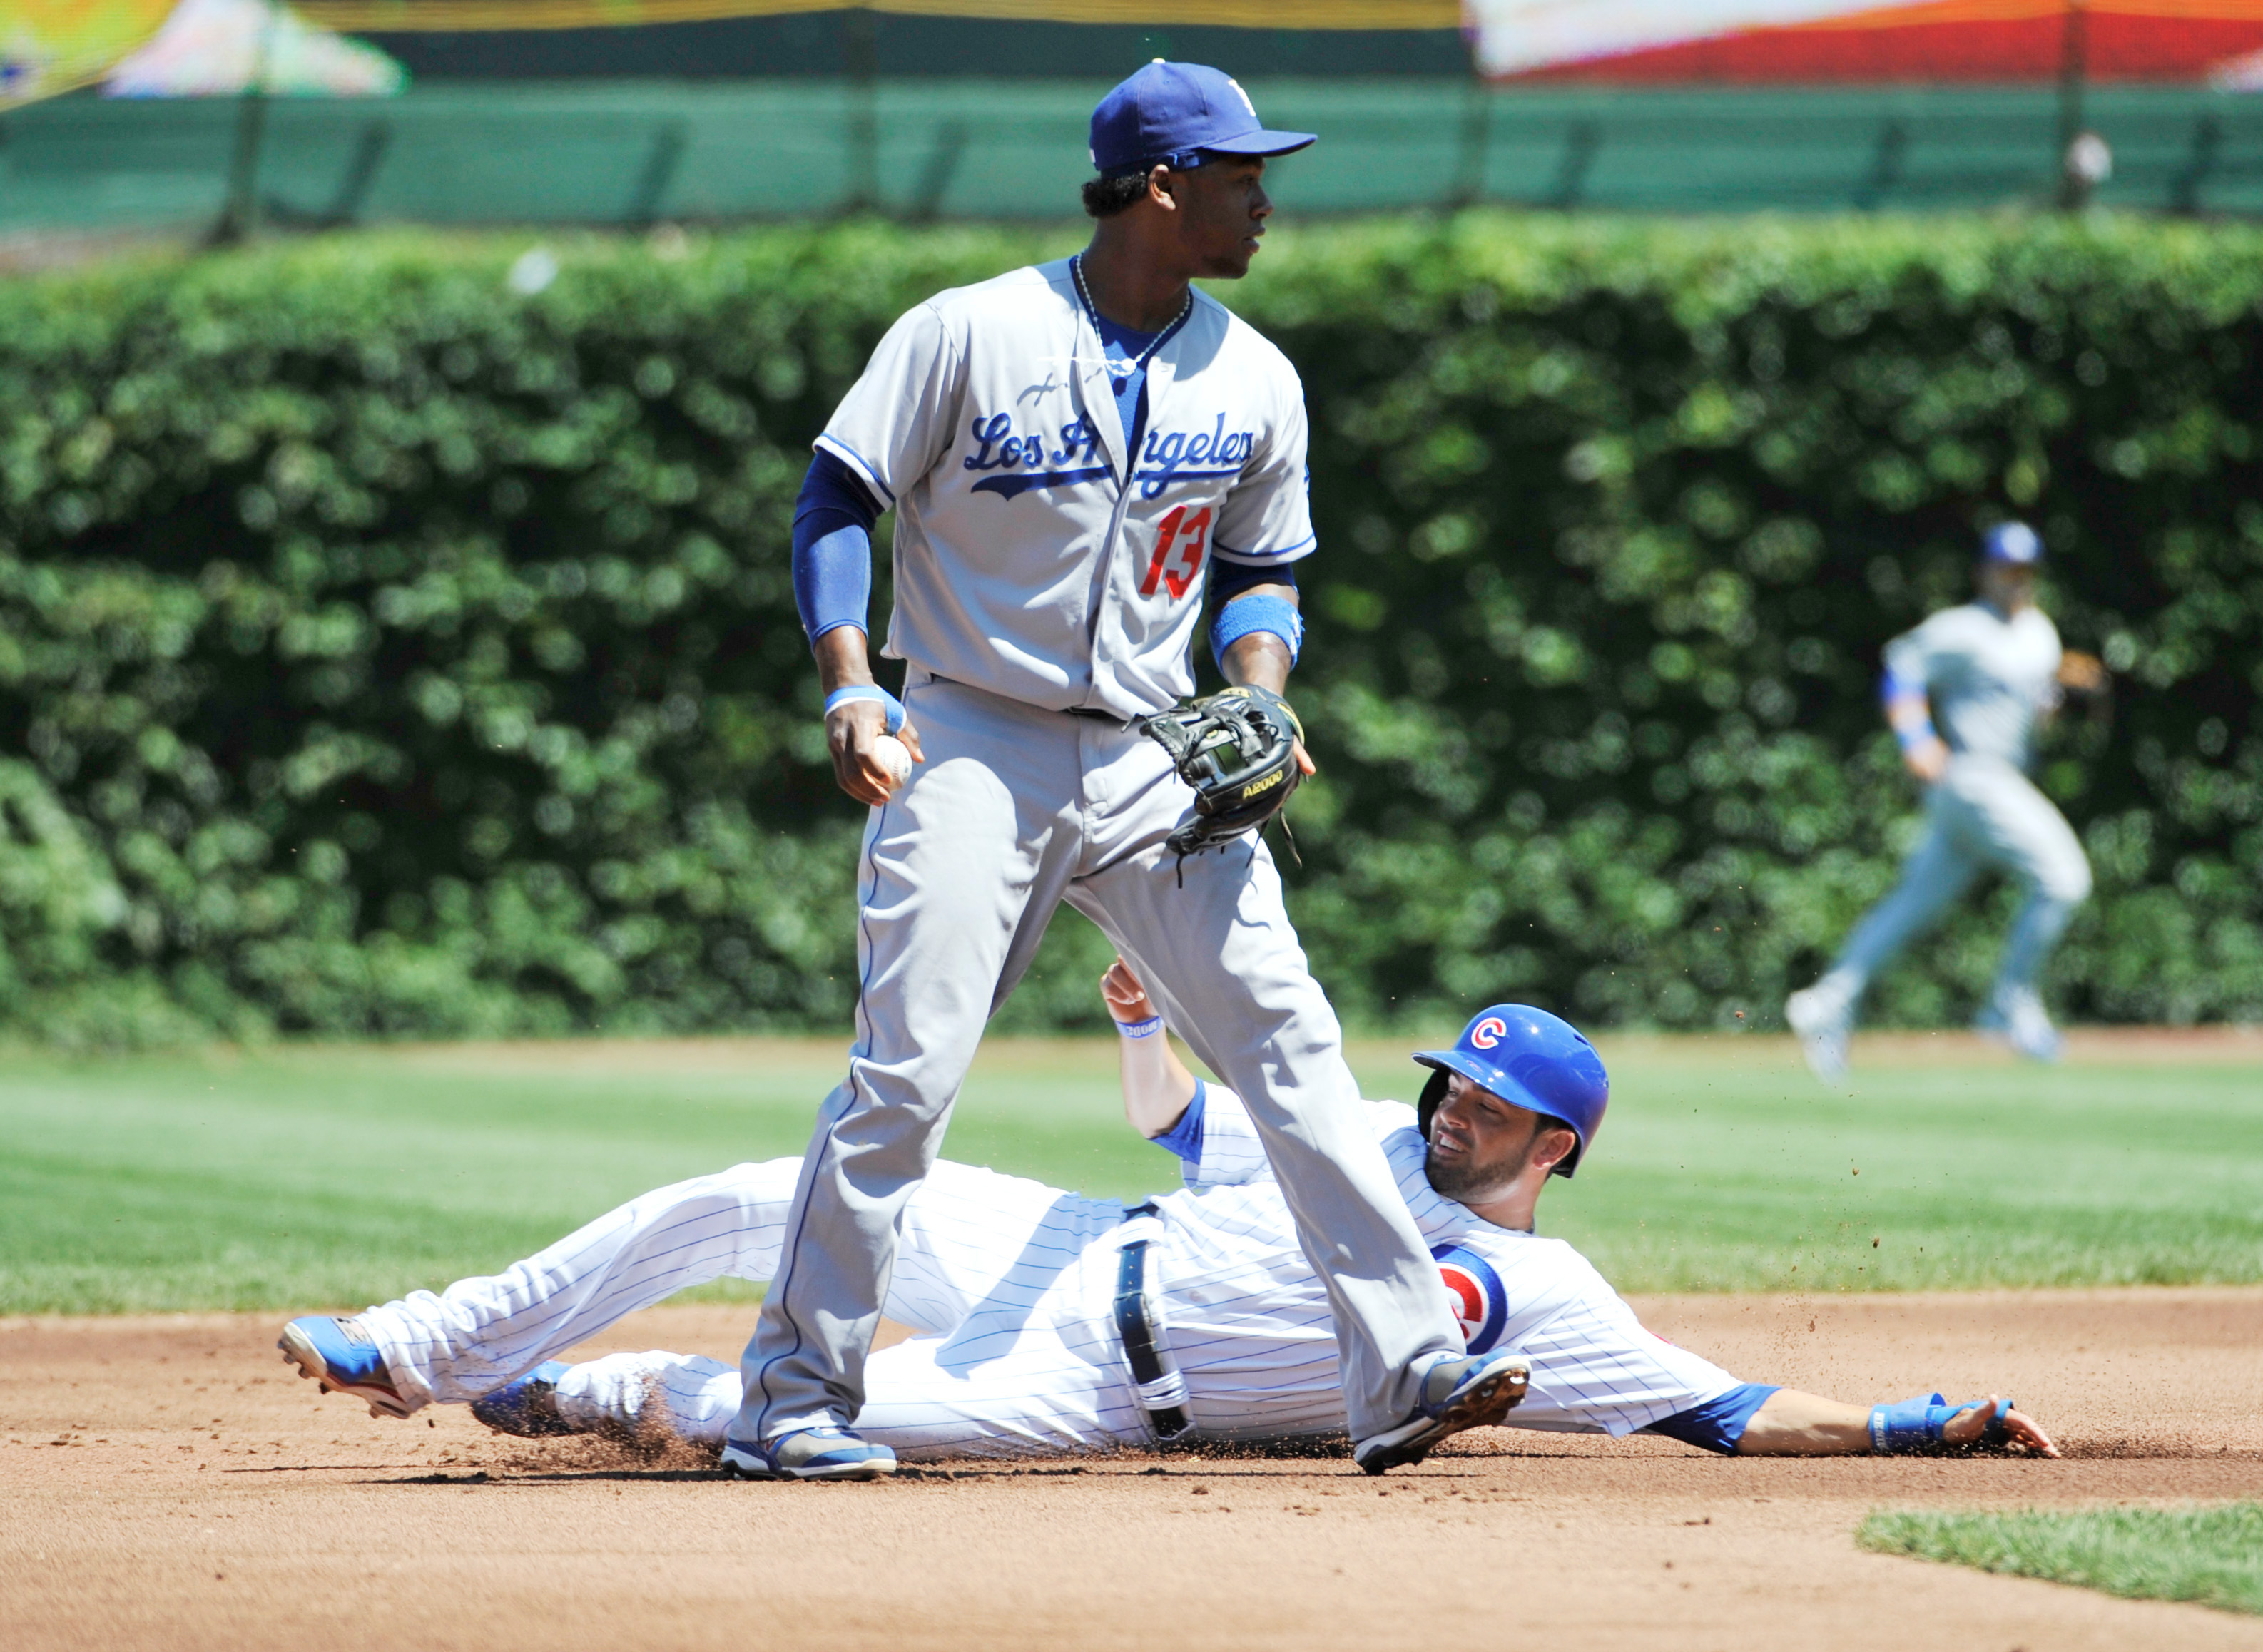 7366281-mlb-los-angeles-dodgers-at-chicago-cubs